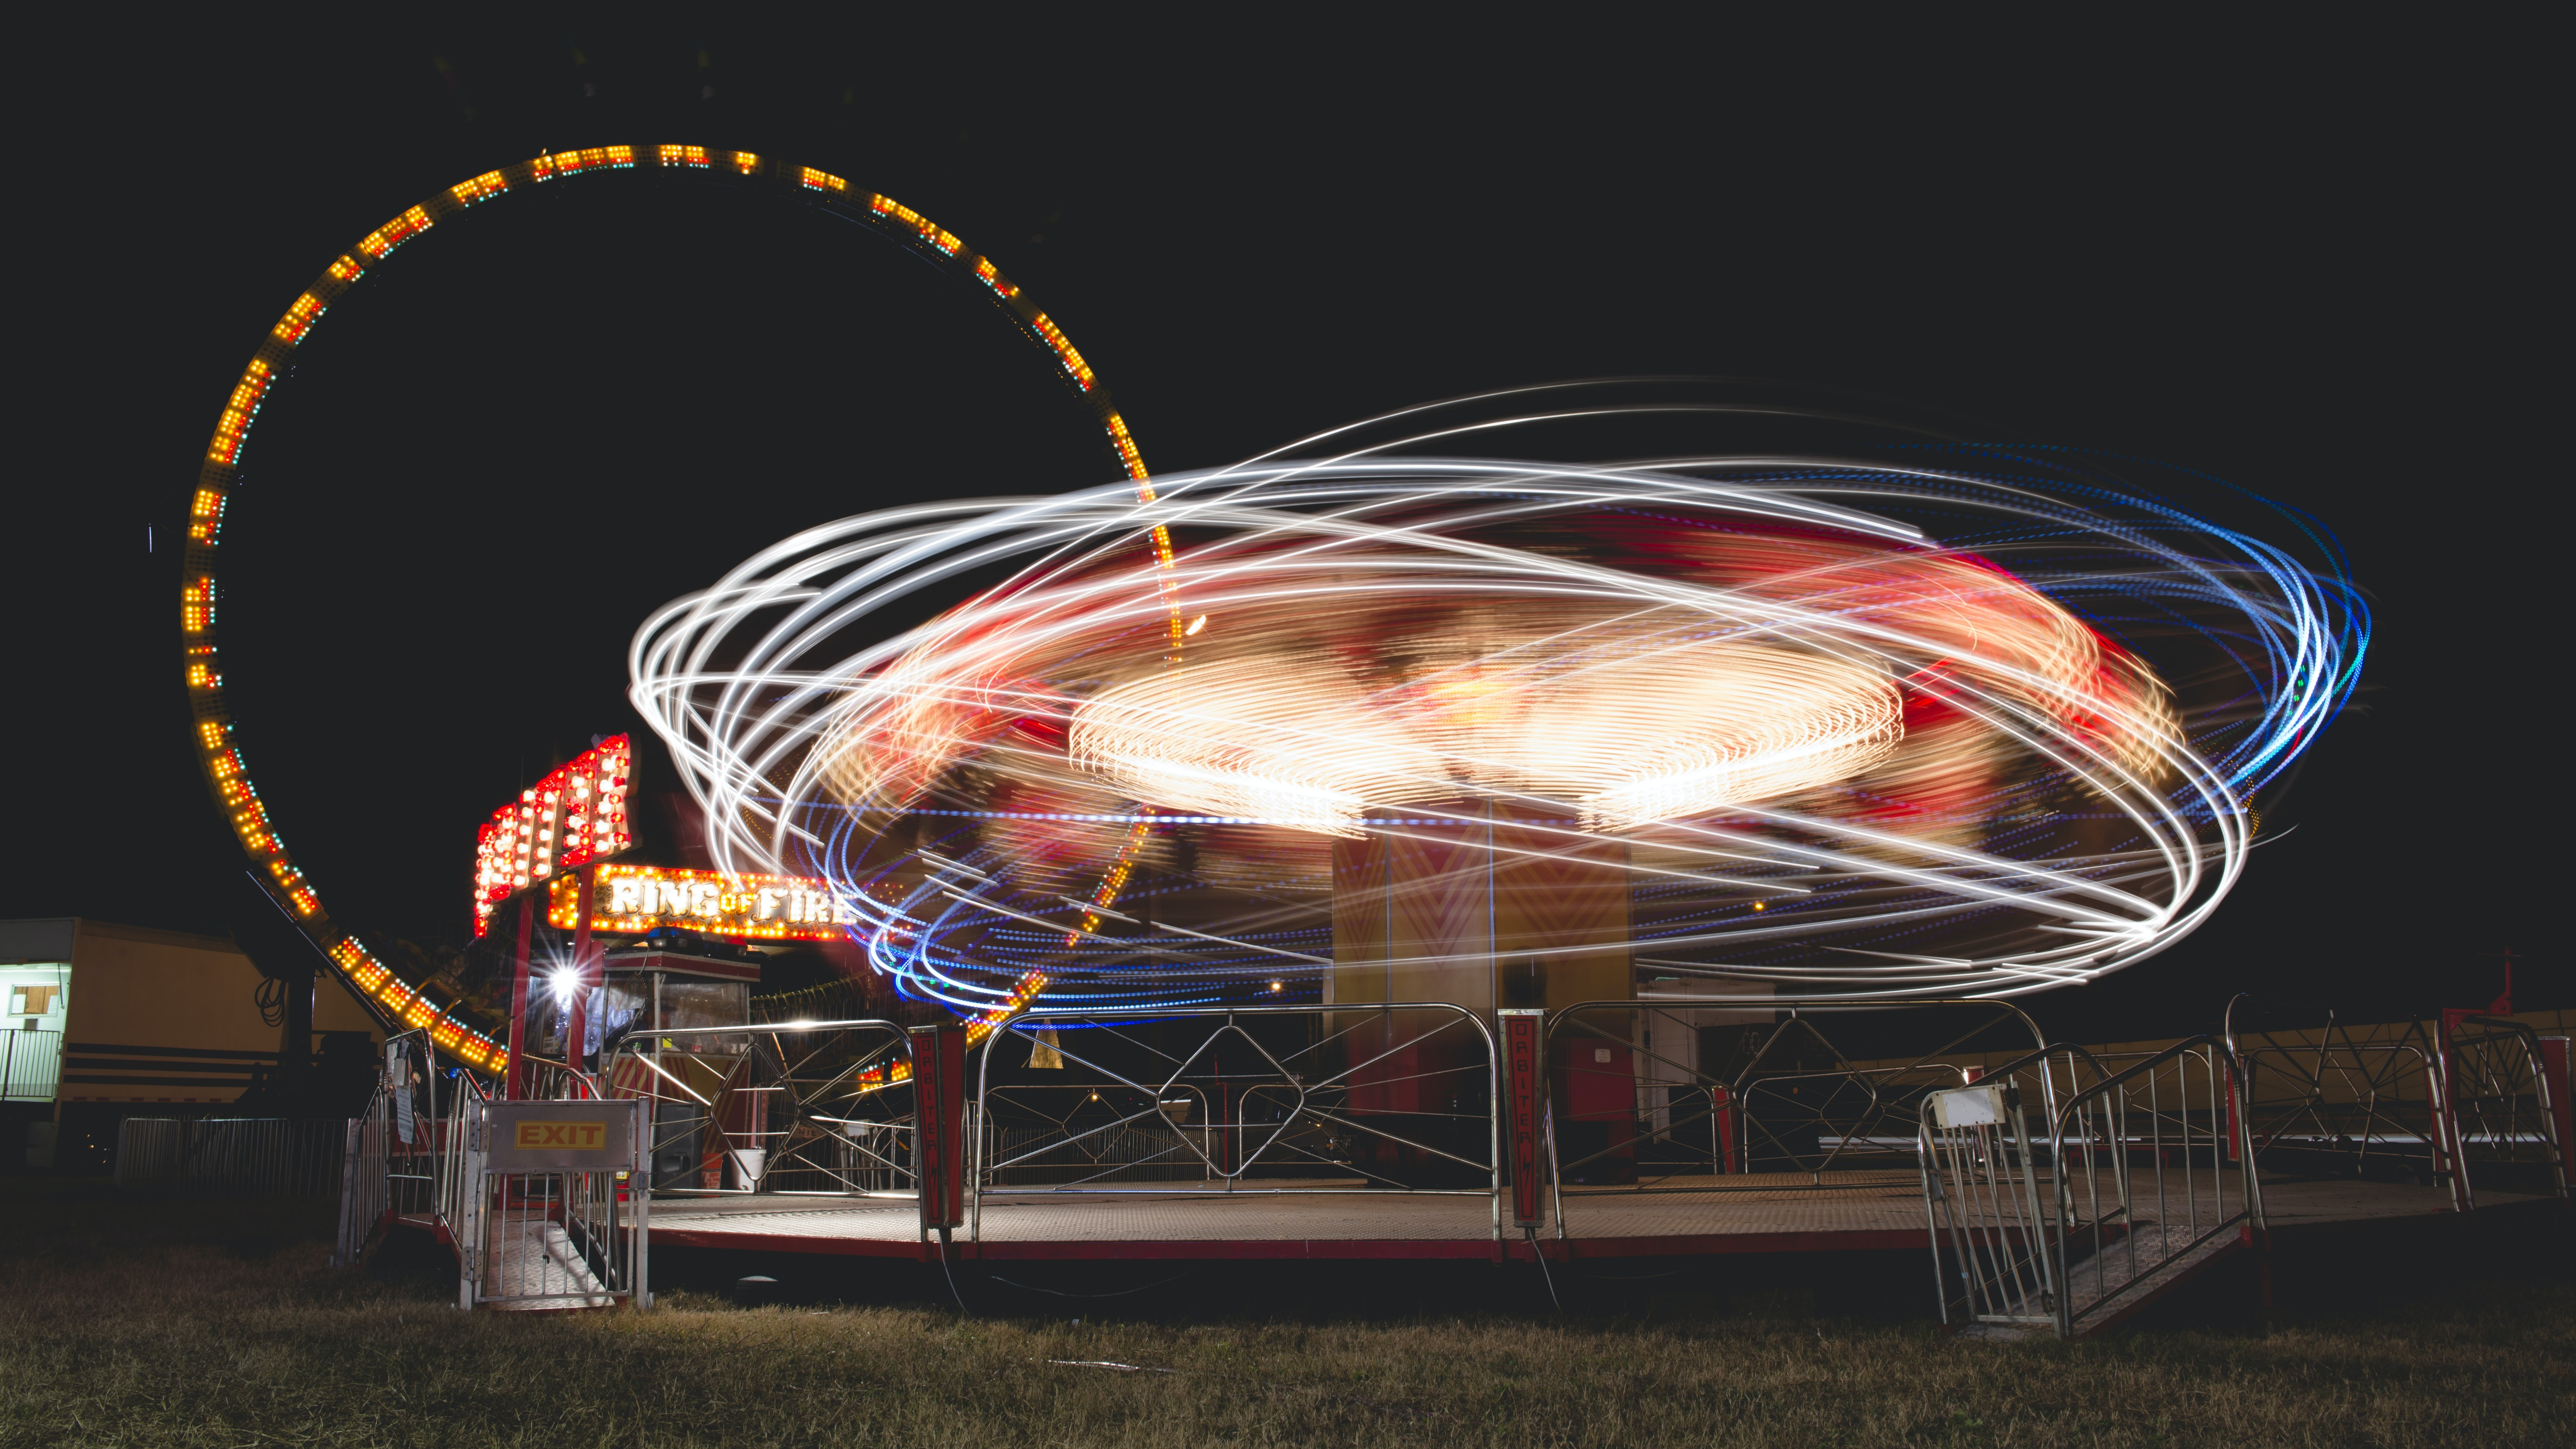 An eccentric, lively image of illuminated carnival rides creating neon light trail patterns in various colors